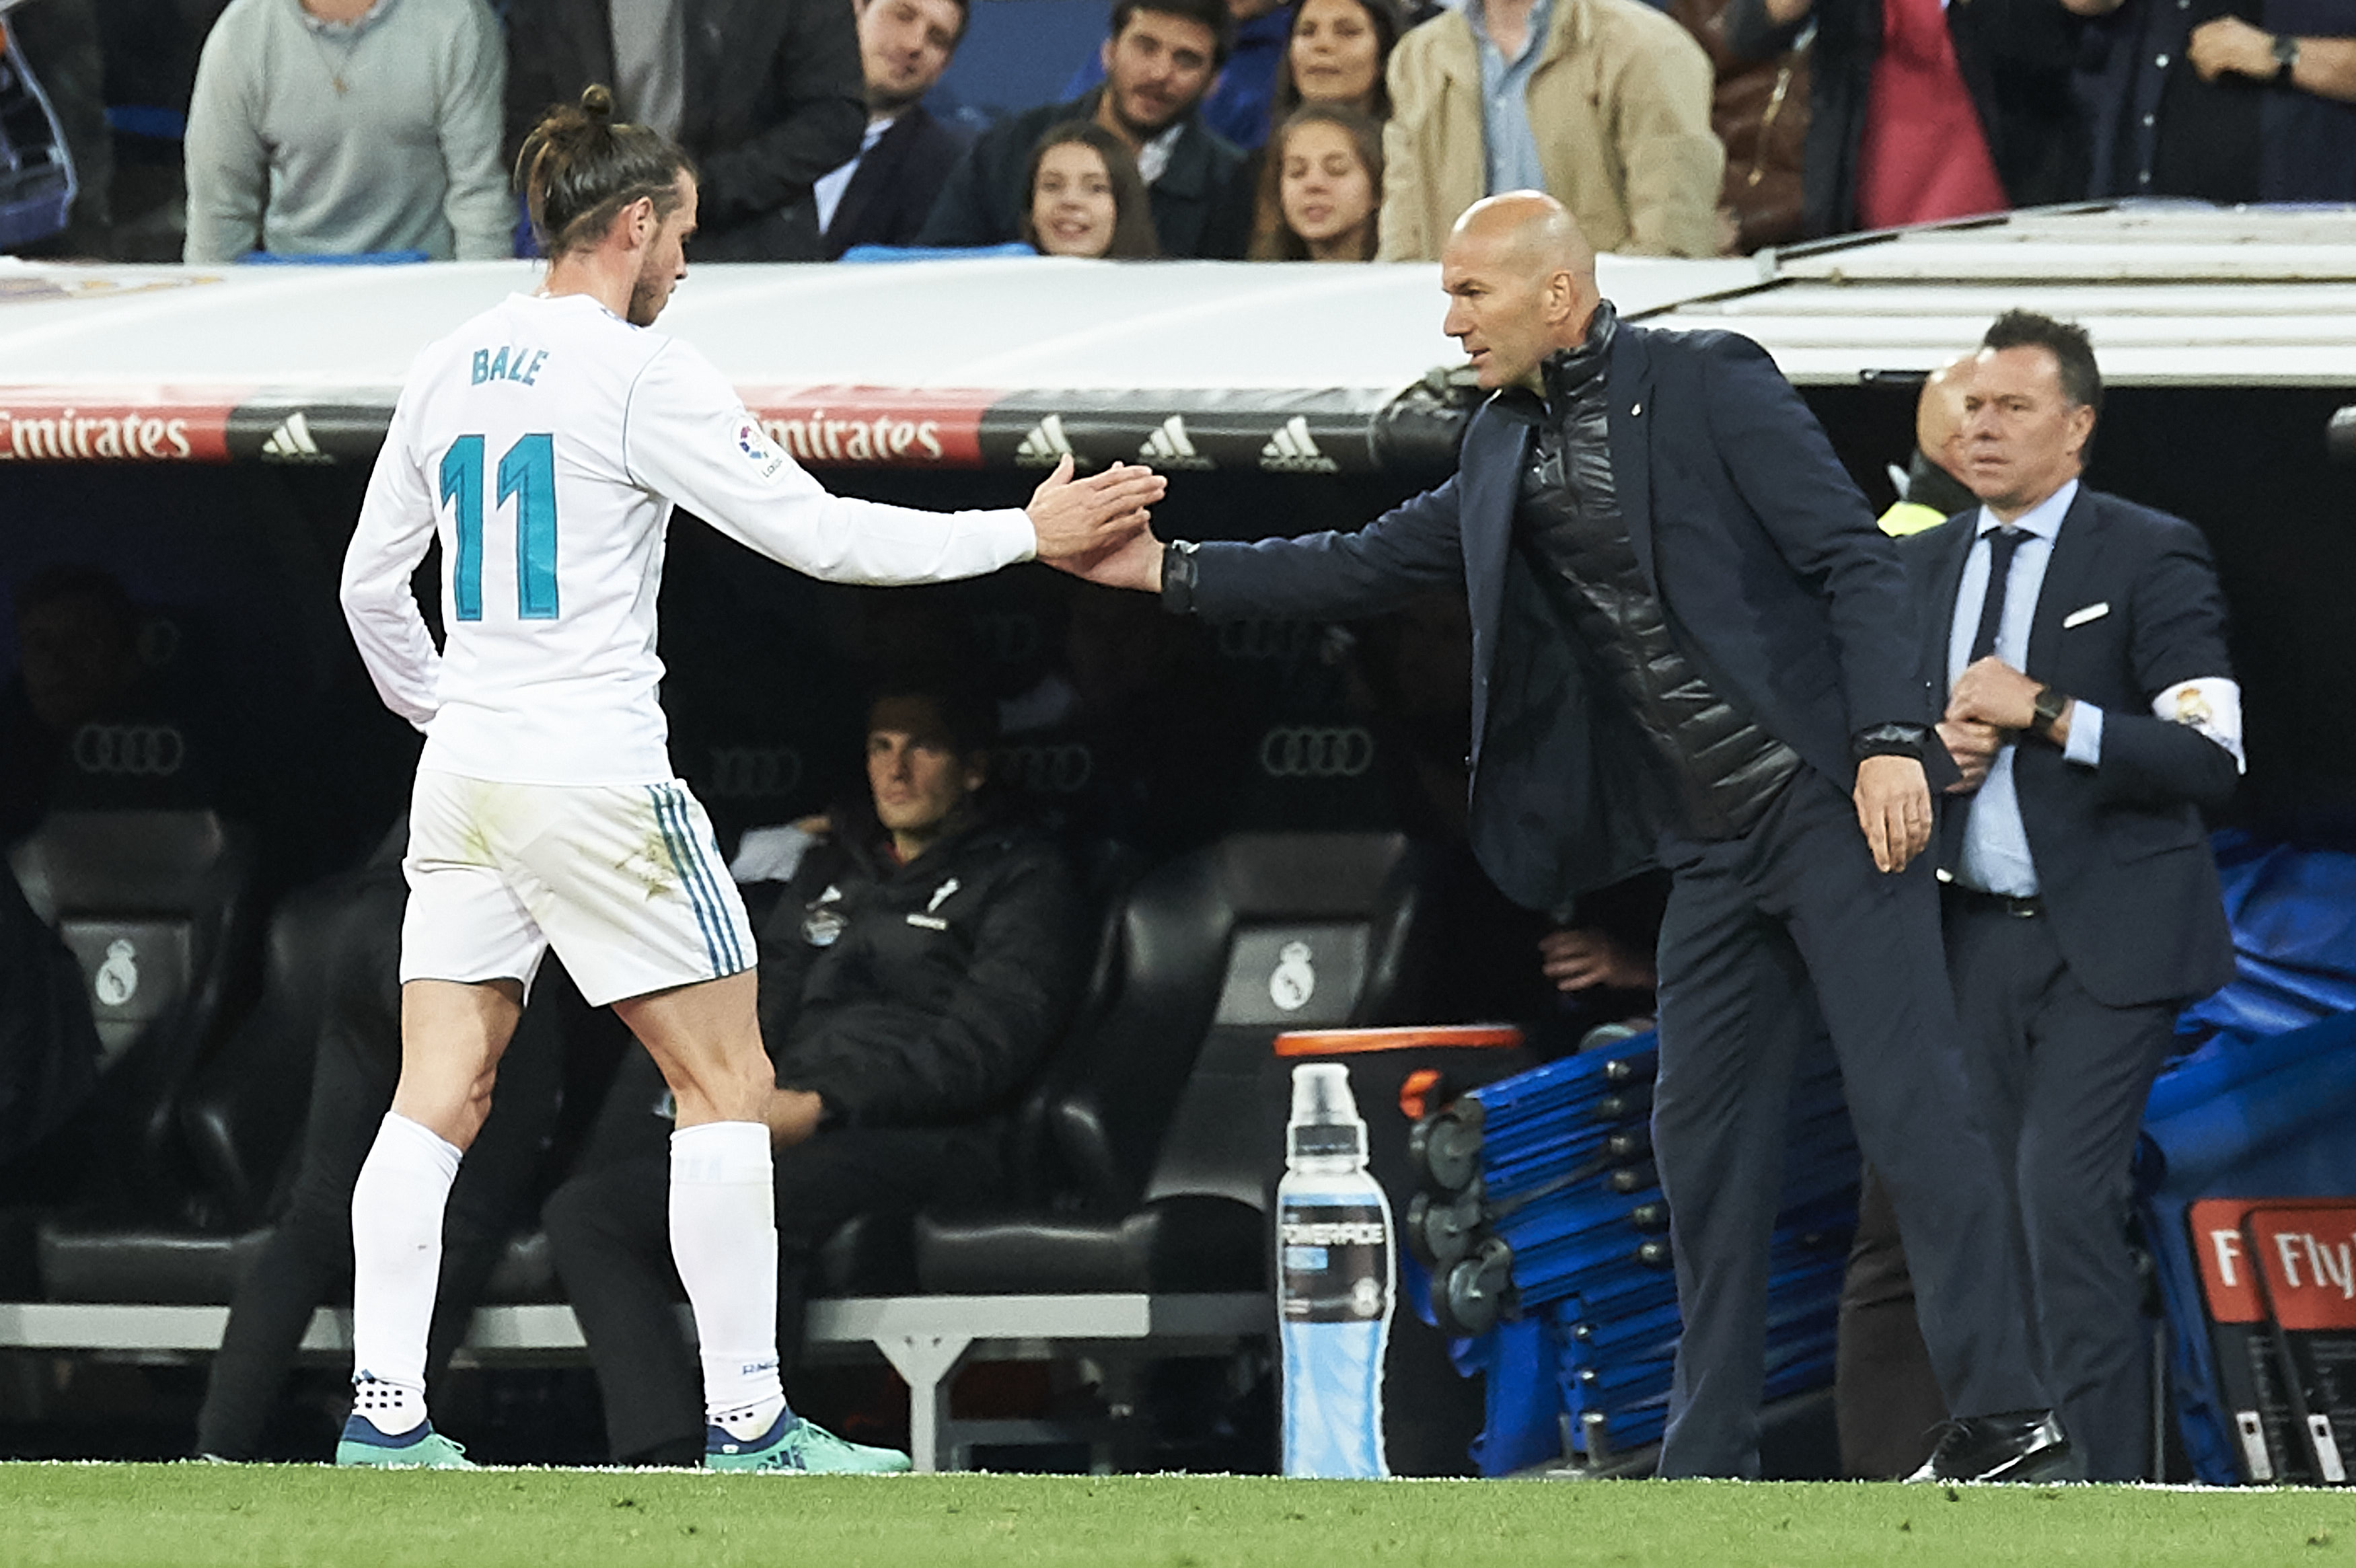 No loved loss between Zidane and Bale. Image PA Images